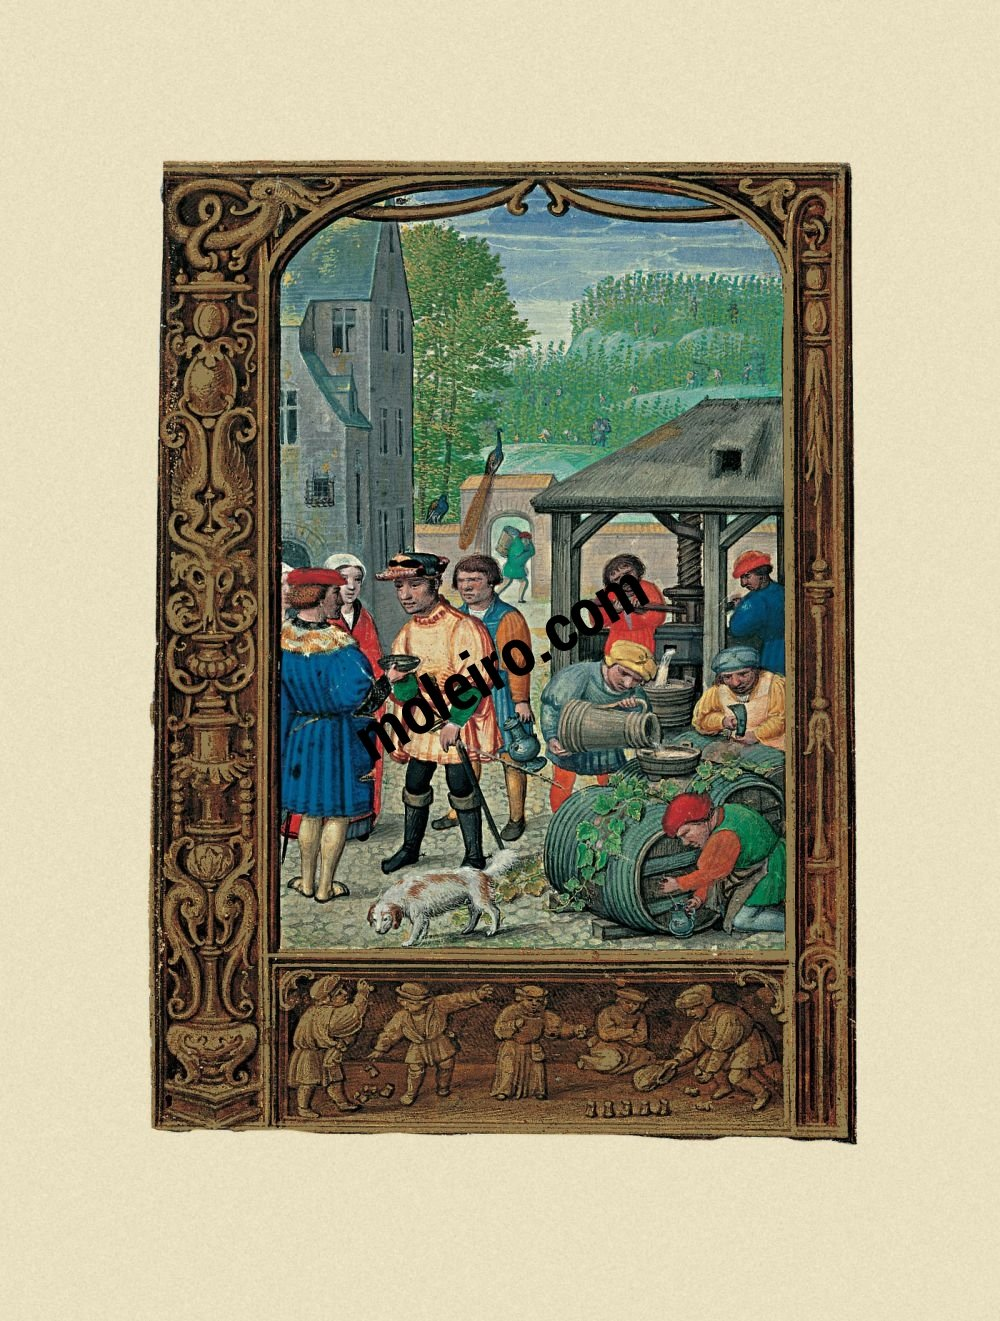 The Golf Book (Book of Hours) f. 27v, October, grape harvest feast